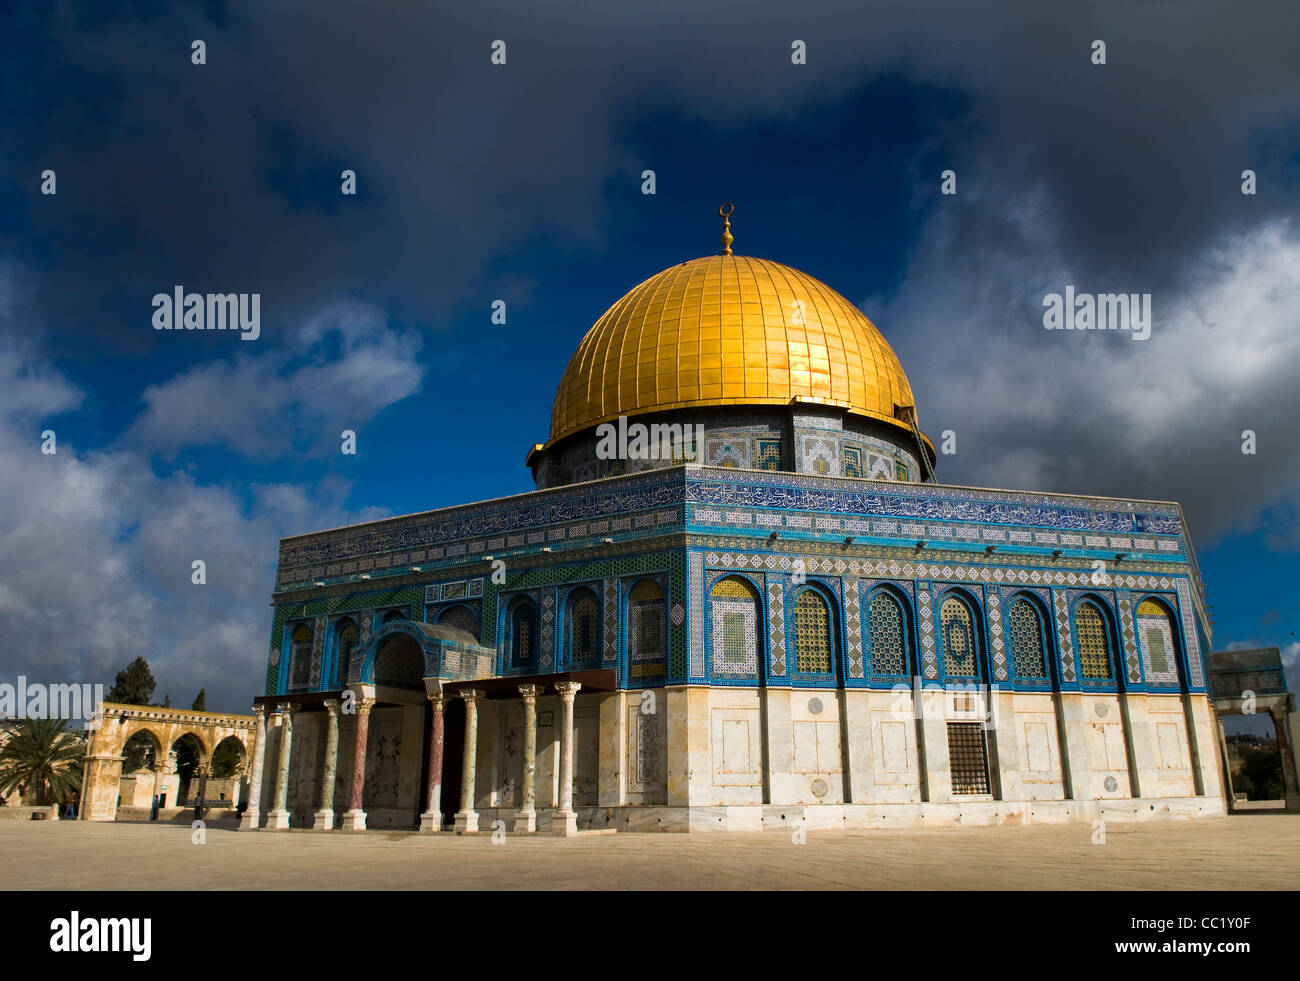 The beautiful Dome of the Rock on top of the Temple Mount in Jerusalem. Stock Photo